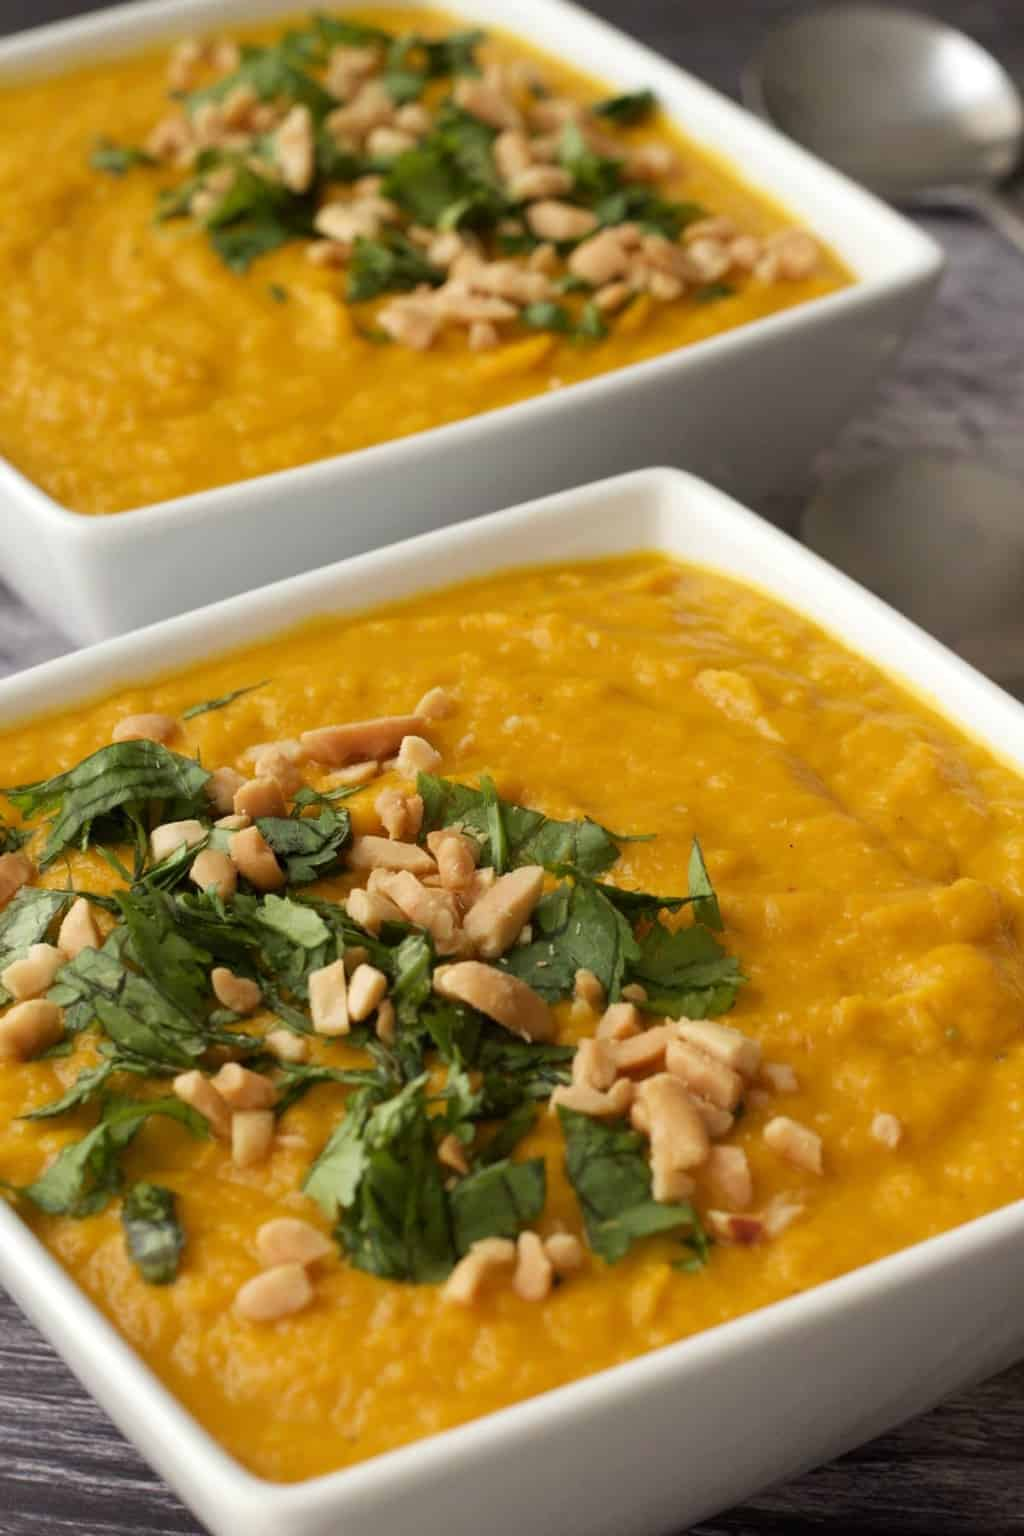 Spicy Vegan Carrot Soup